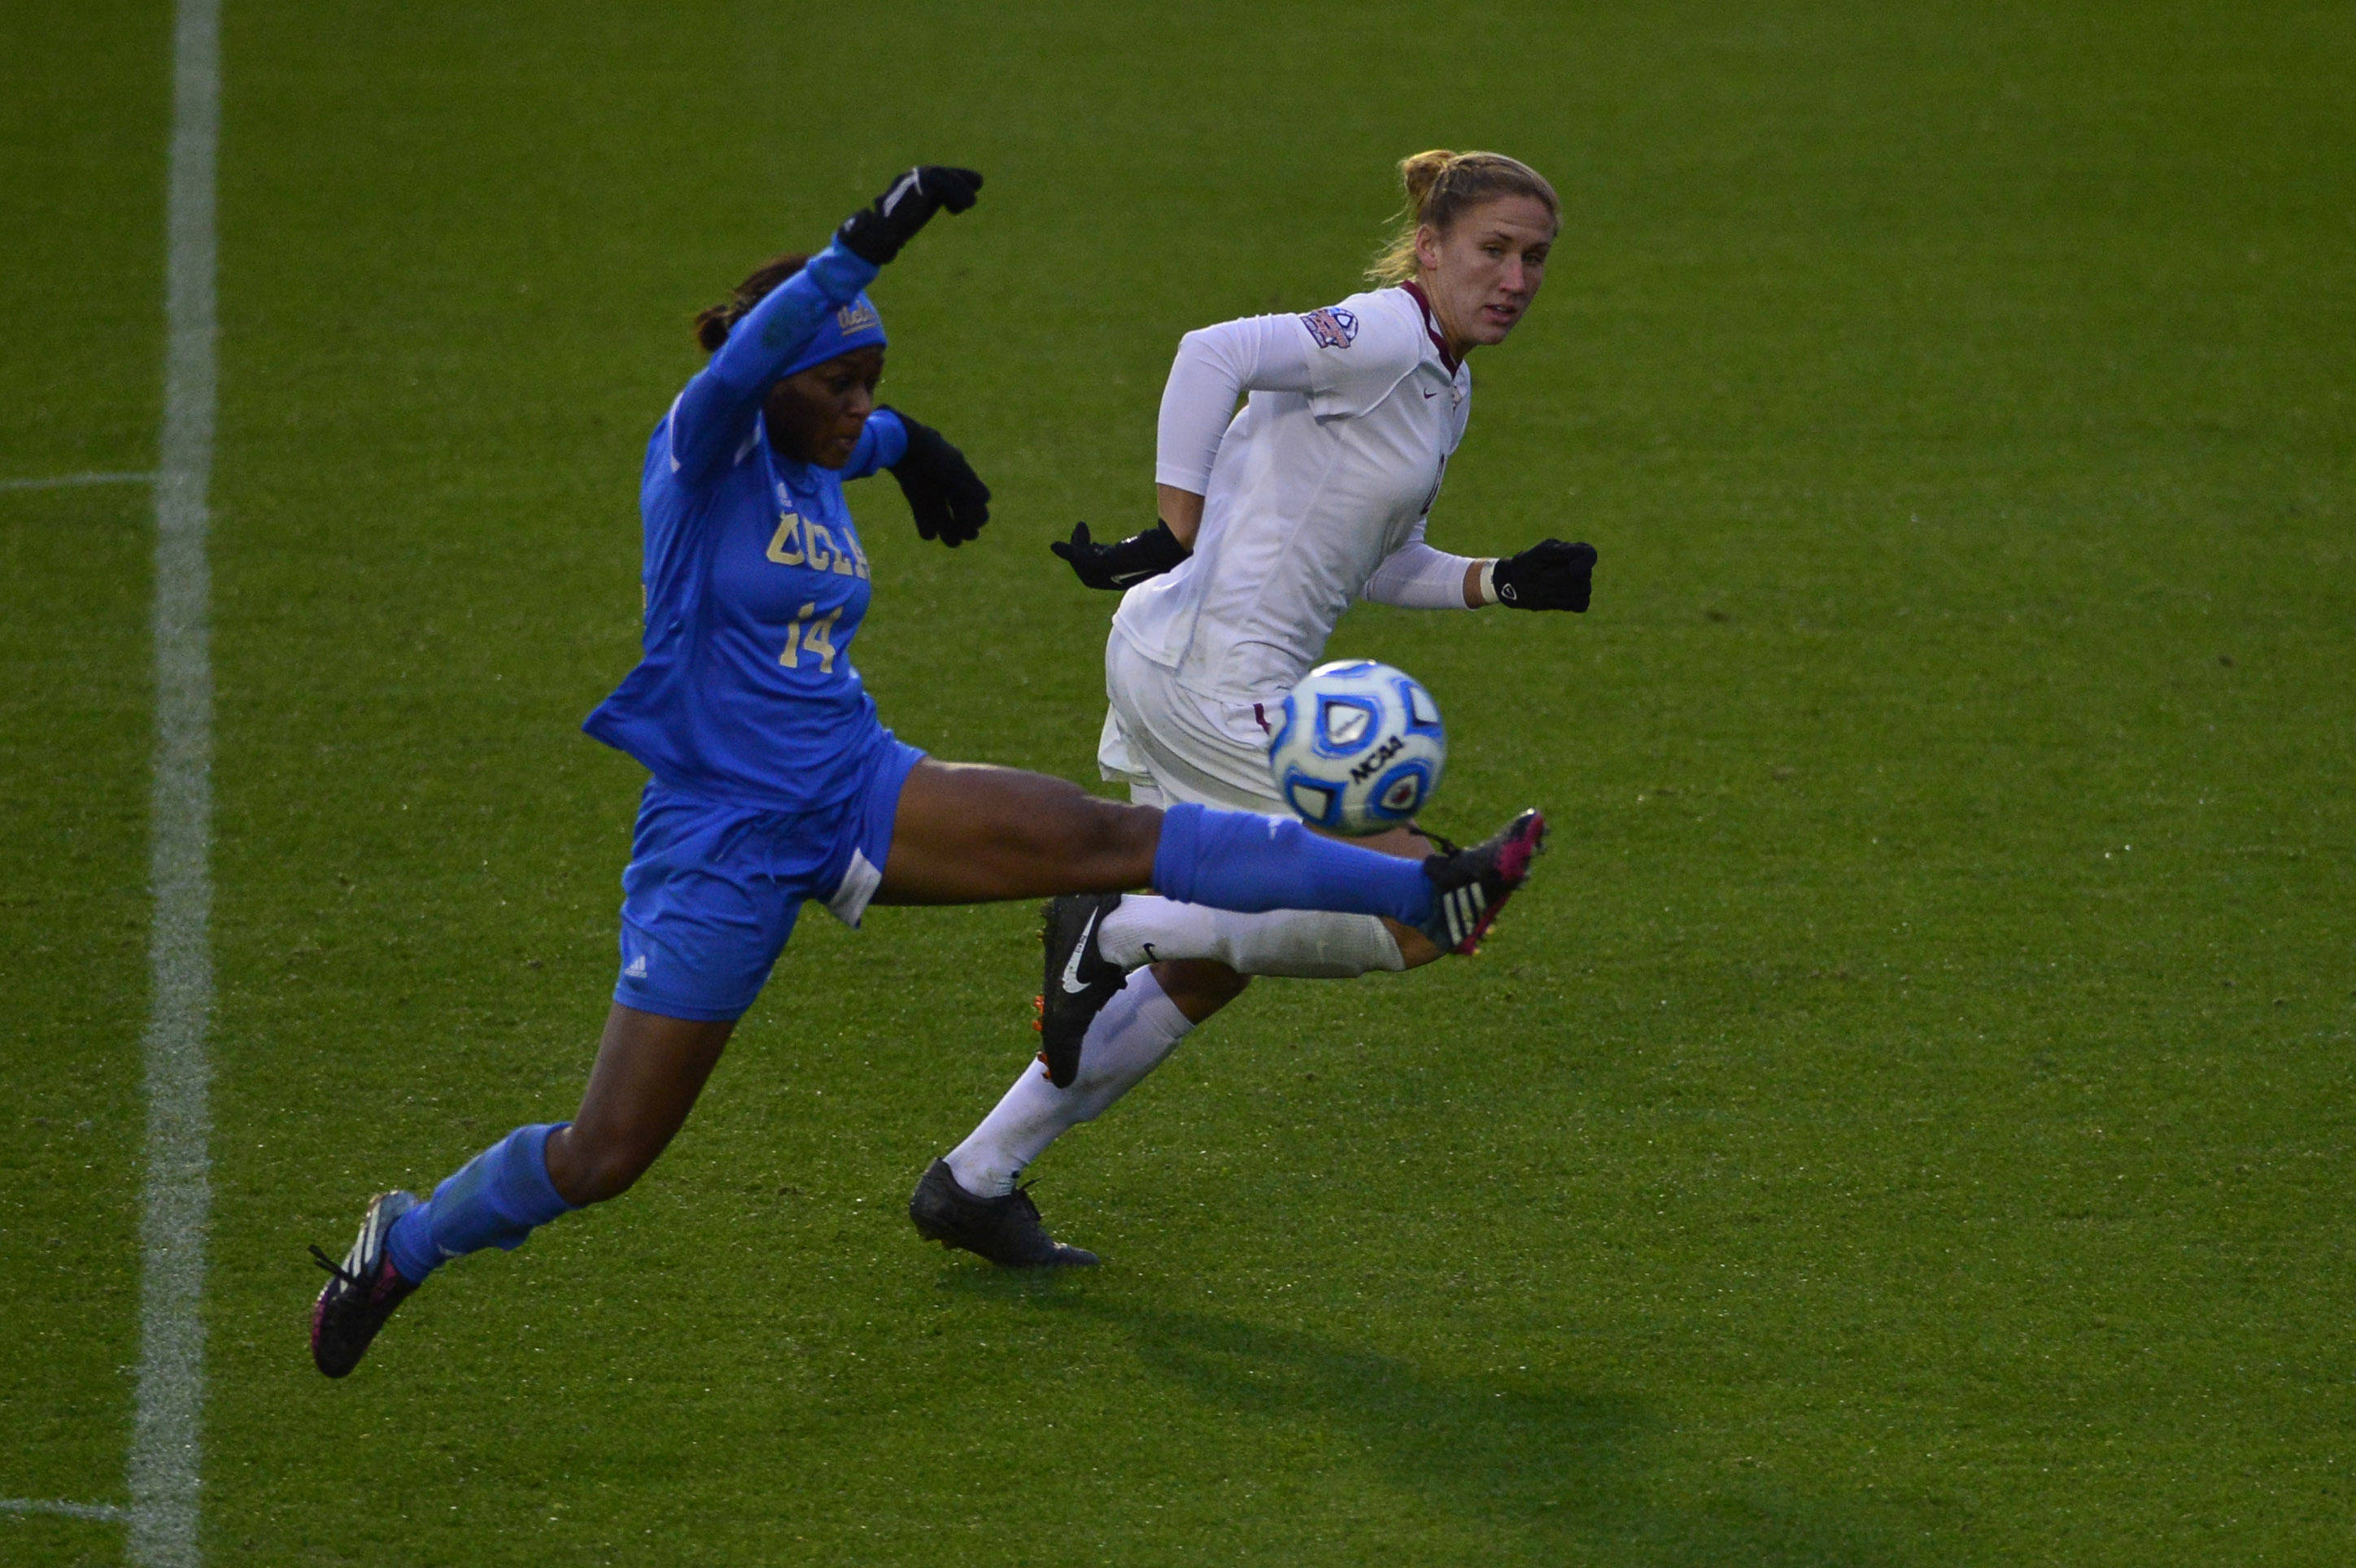 Dec 8, 2013; Cary, NC, USA; UCLA Bruins forward Taylor Smith (14) kicks the ball as Florida State Seminoles defender/midfielder Kristin Grubka (13) defends. The Bruins defeated the Seminoles 1-0 in overtime at WakeMed Soccer Park. Mandatory Credit: Bob Donnan-USA TODAY Sports